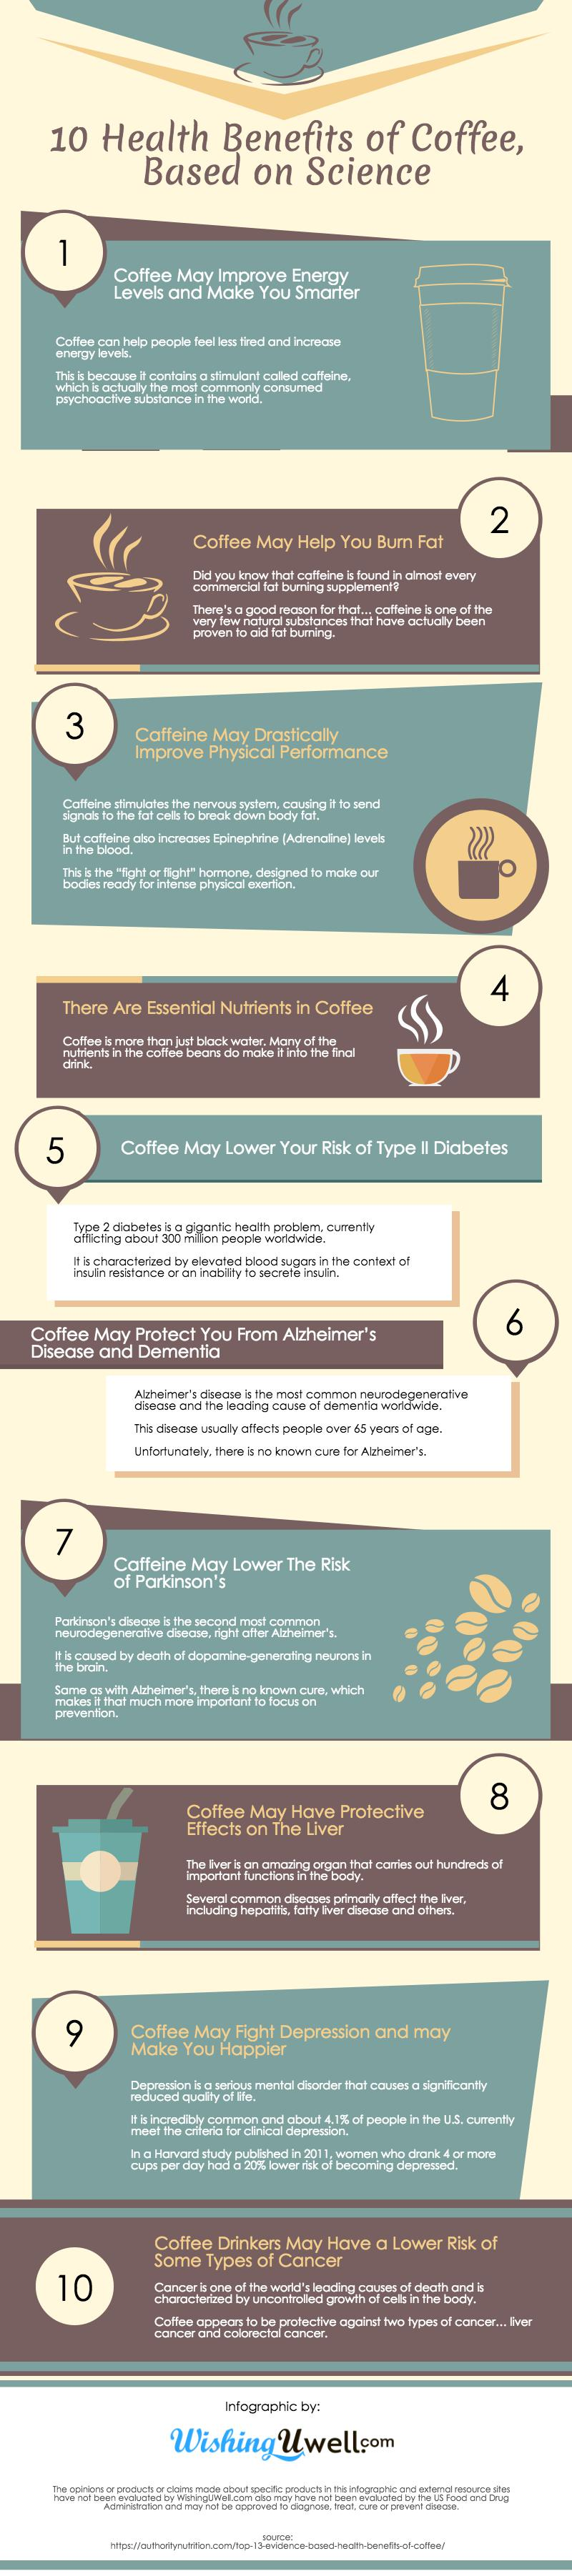 Infographic : 10 Health Benefits of Coffee